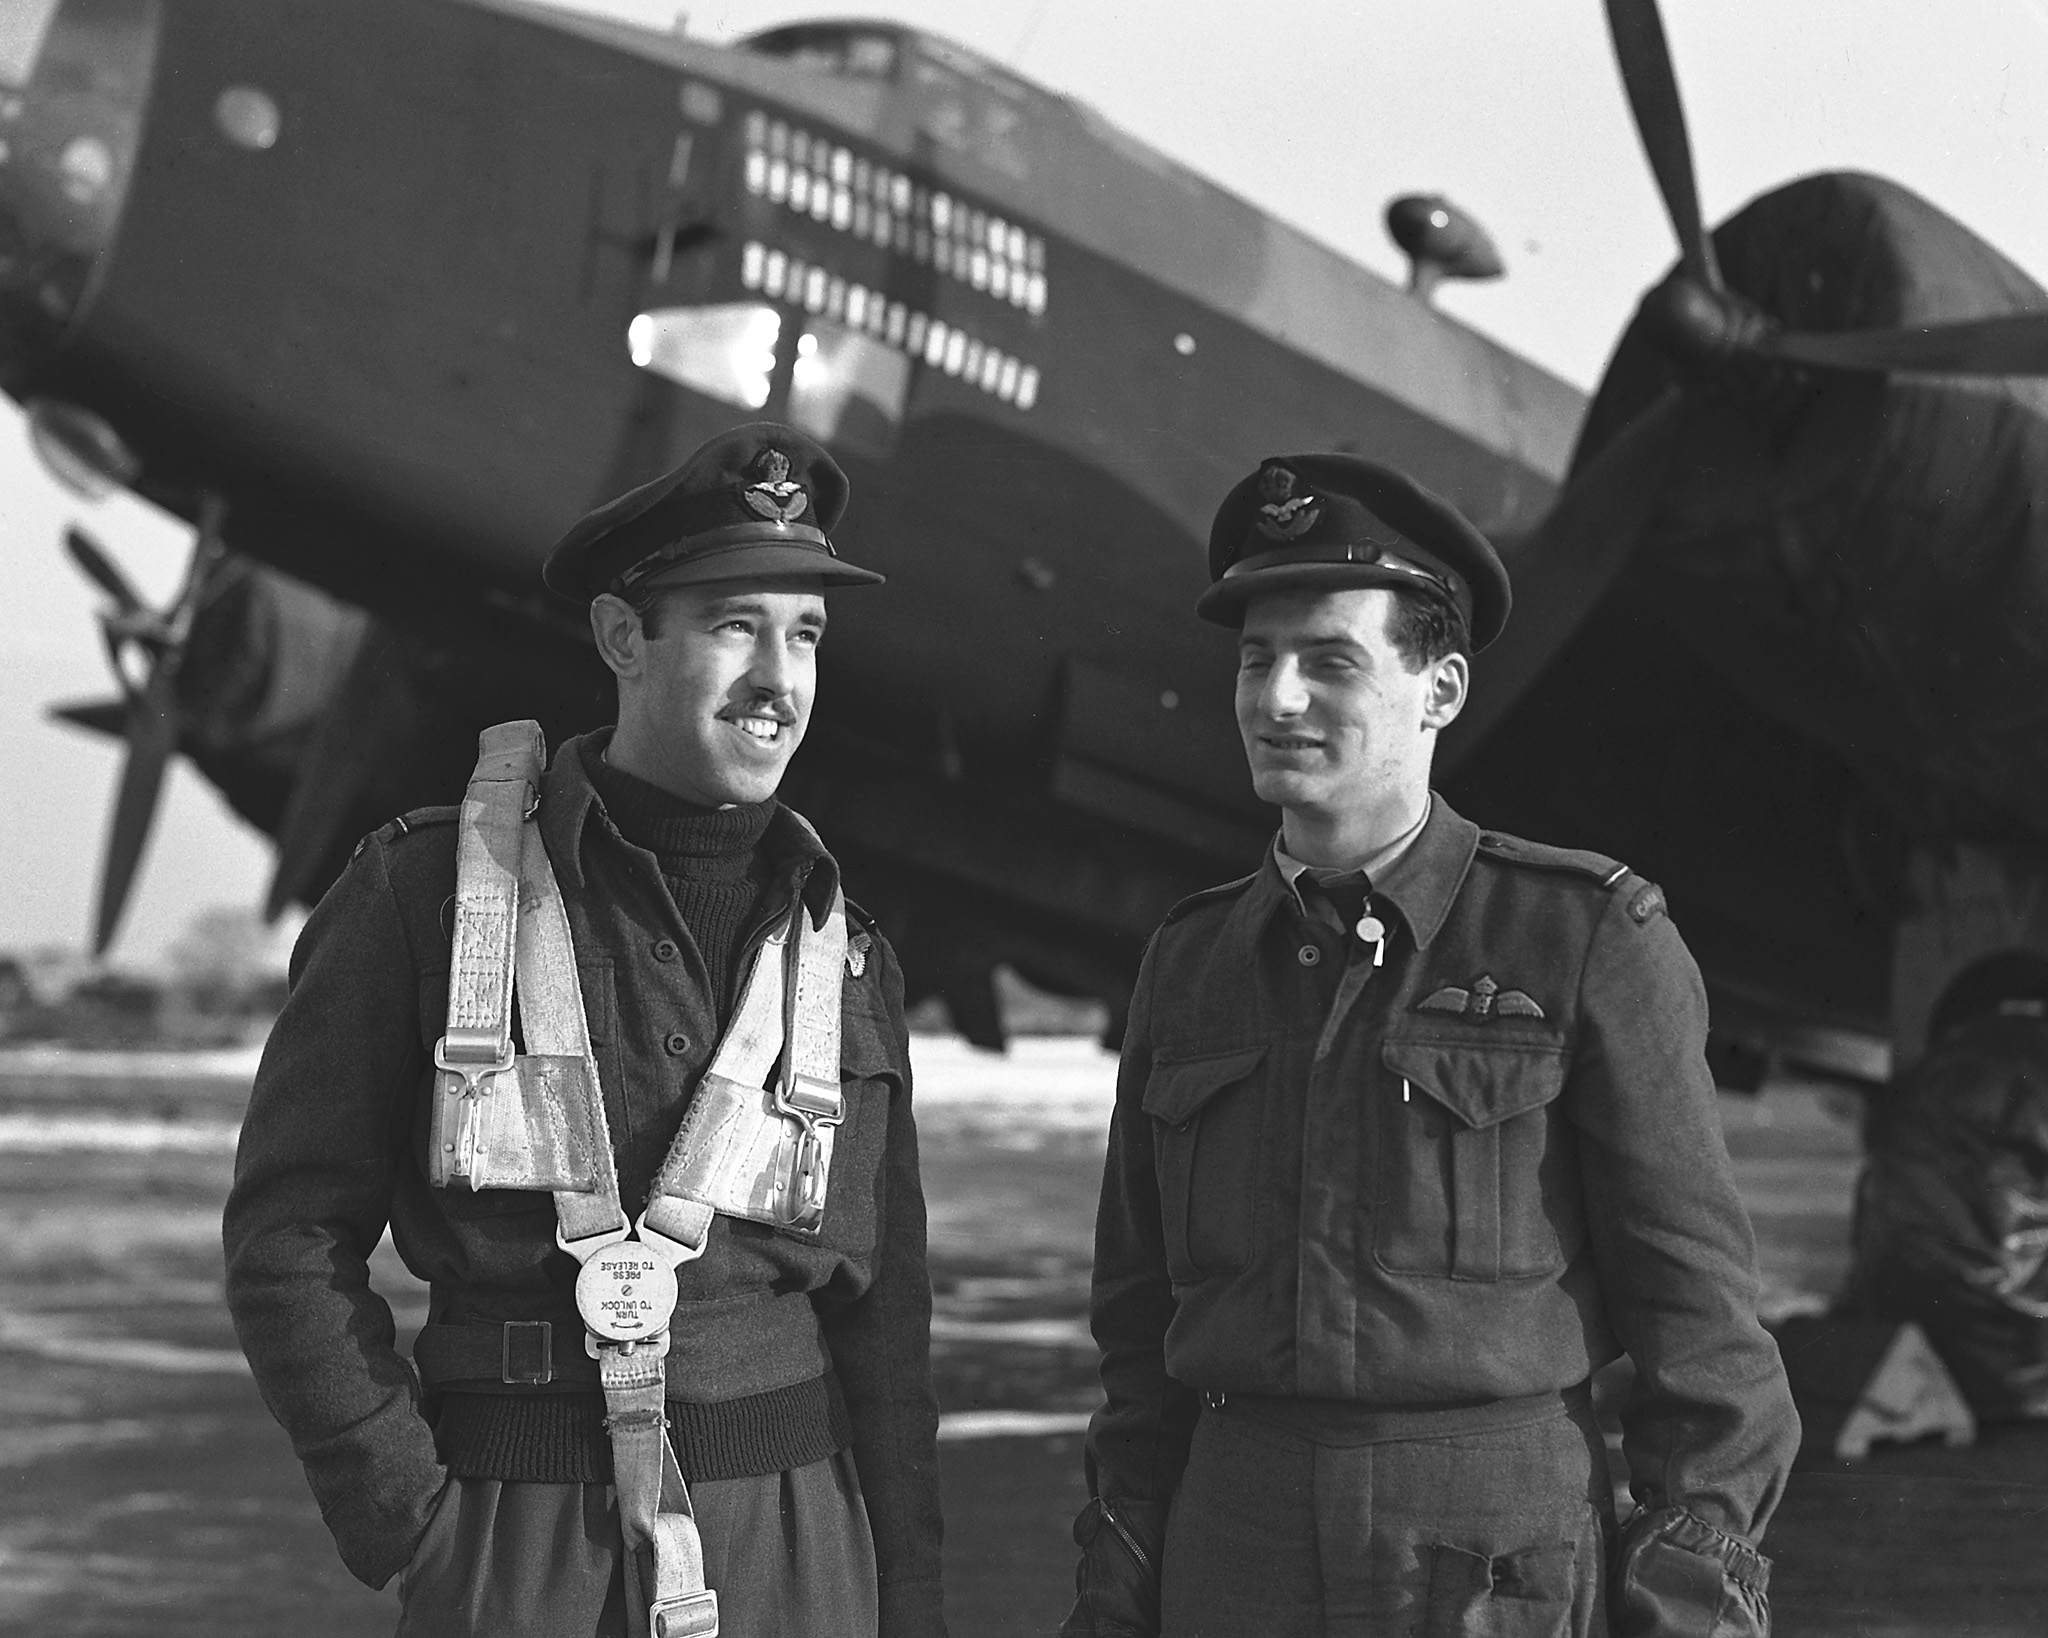 """Group Photo– PL-41811 - 16 Dec 1944, United Kingdom Two members of 432 """"Leaside"""" Squadron RCAF with more than 20 operations against the enemy to their credit. (Right) Flight Officer Mike Krakovsky, Toronto, pilot and Flying Officer Gordon Wilson, Chatham (286 Lacroix St.) bomb aimer."""